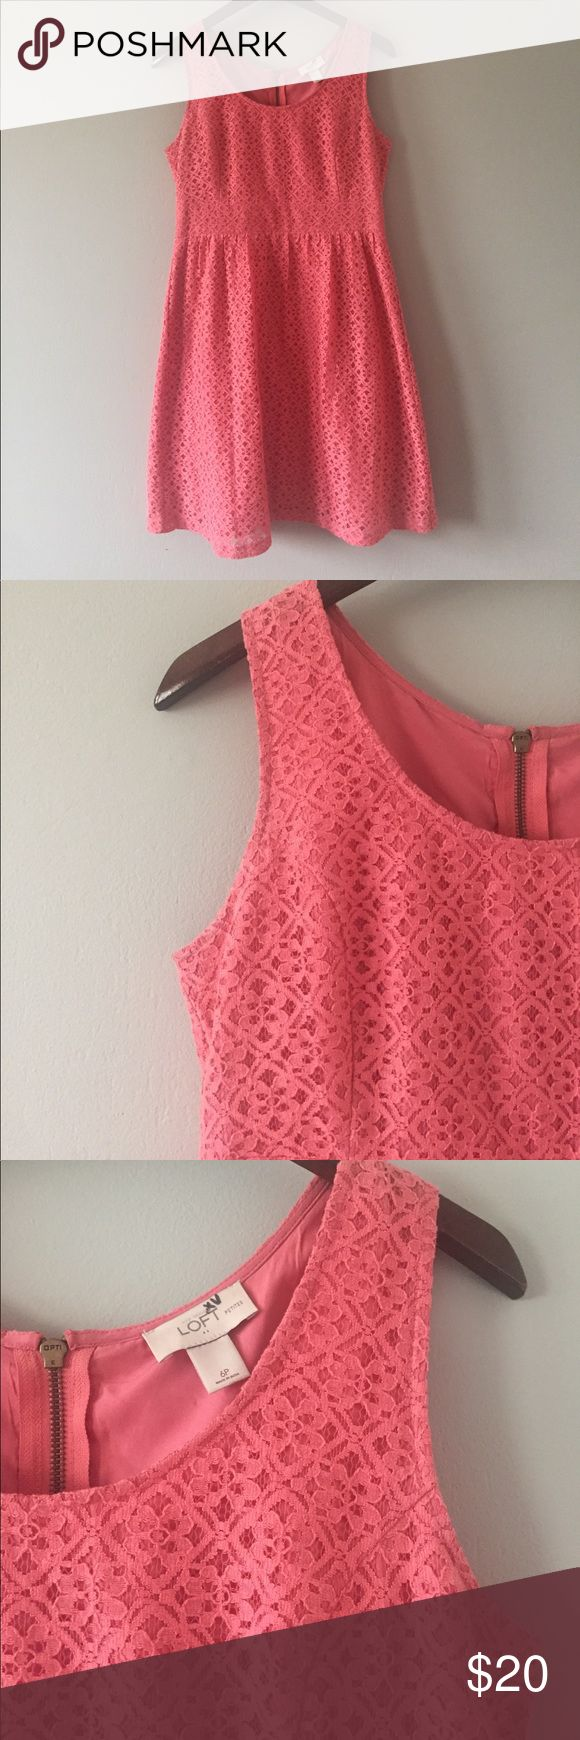 pretty coral lace LOFT dress size 6P dorable coral lace dress from the LOFT. size 6P. zips up the back. great condition. bundle with other items for an even deeper discount. LOFT Dresses